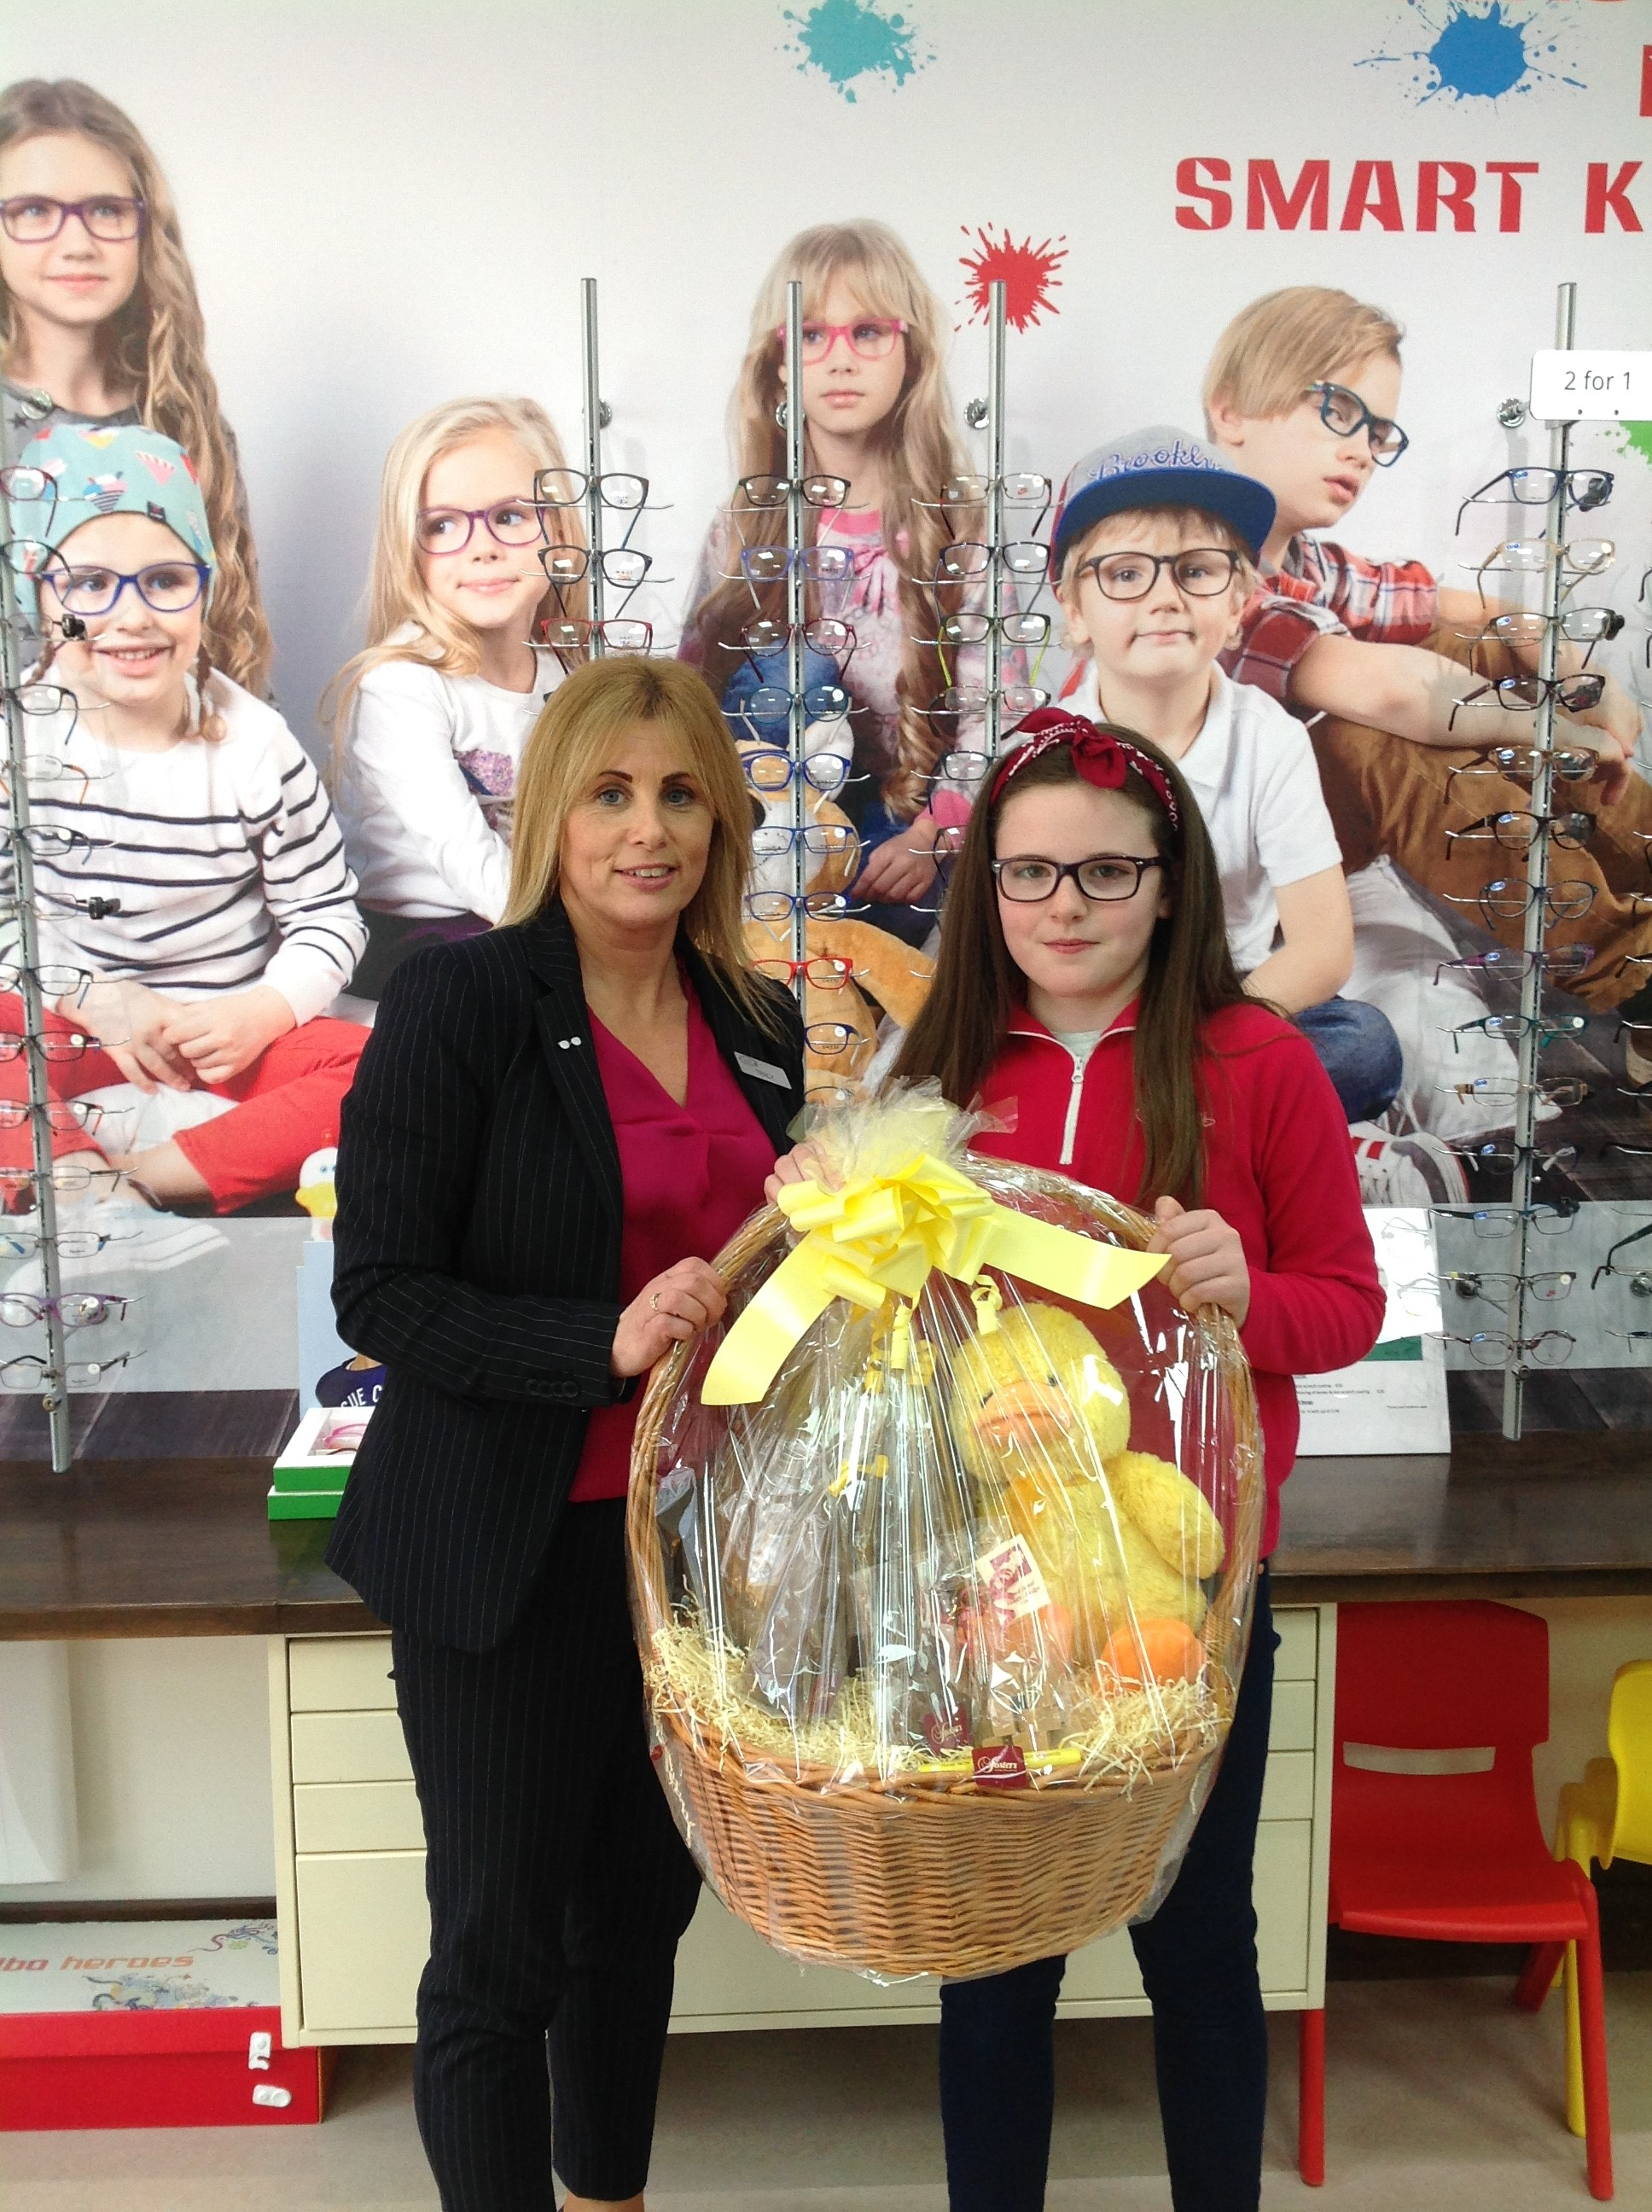 Congratulations to Caoimhe McCarthy who is the winner of our fabulous Easter hamper! - Happy Easter to all our customers and keep an out here for more great competitions!